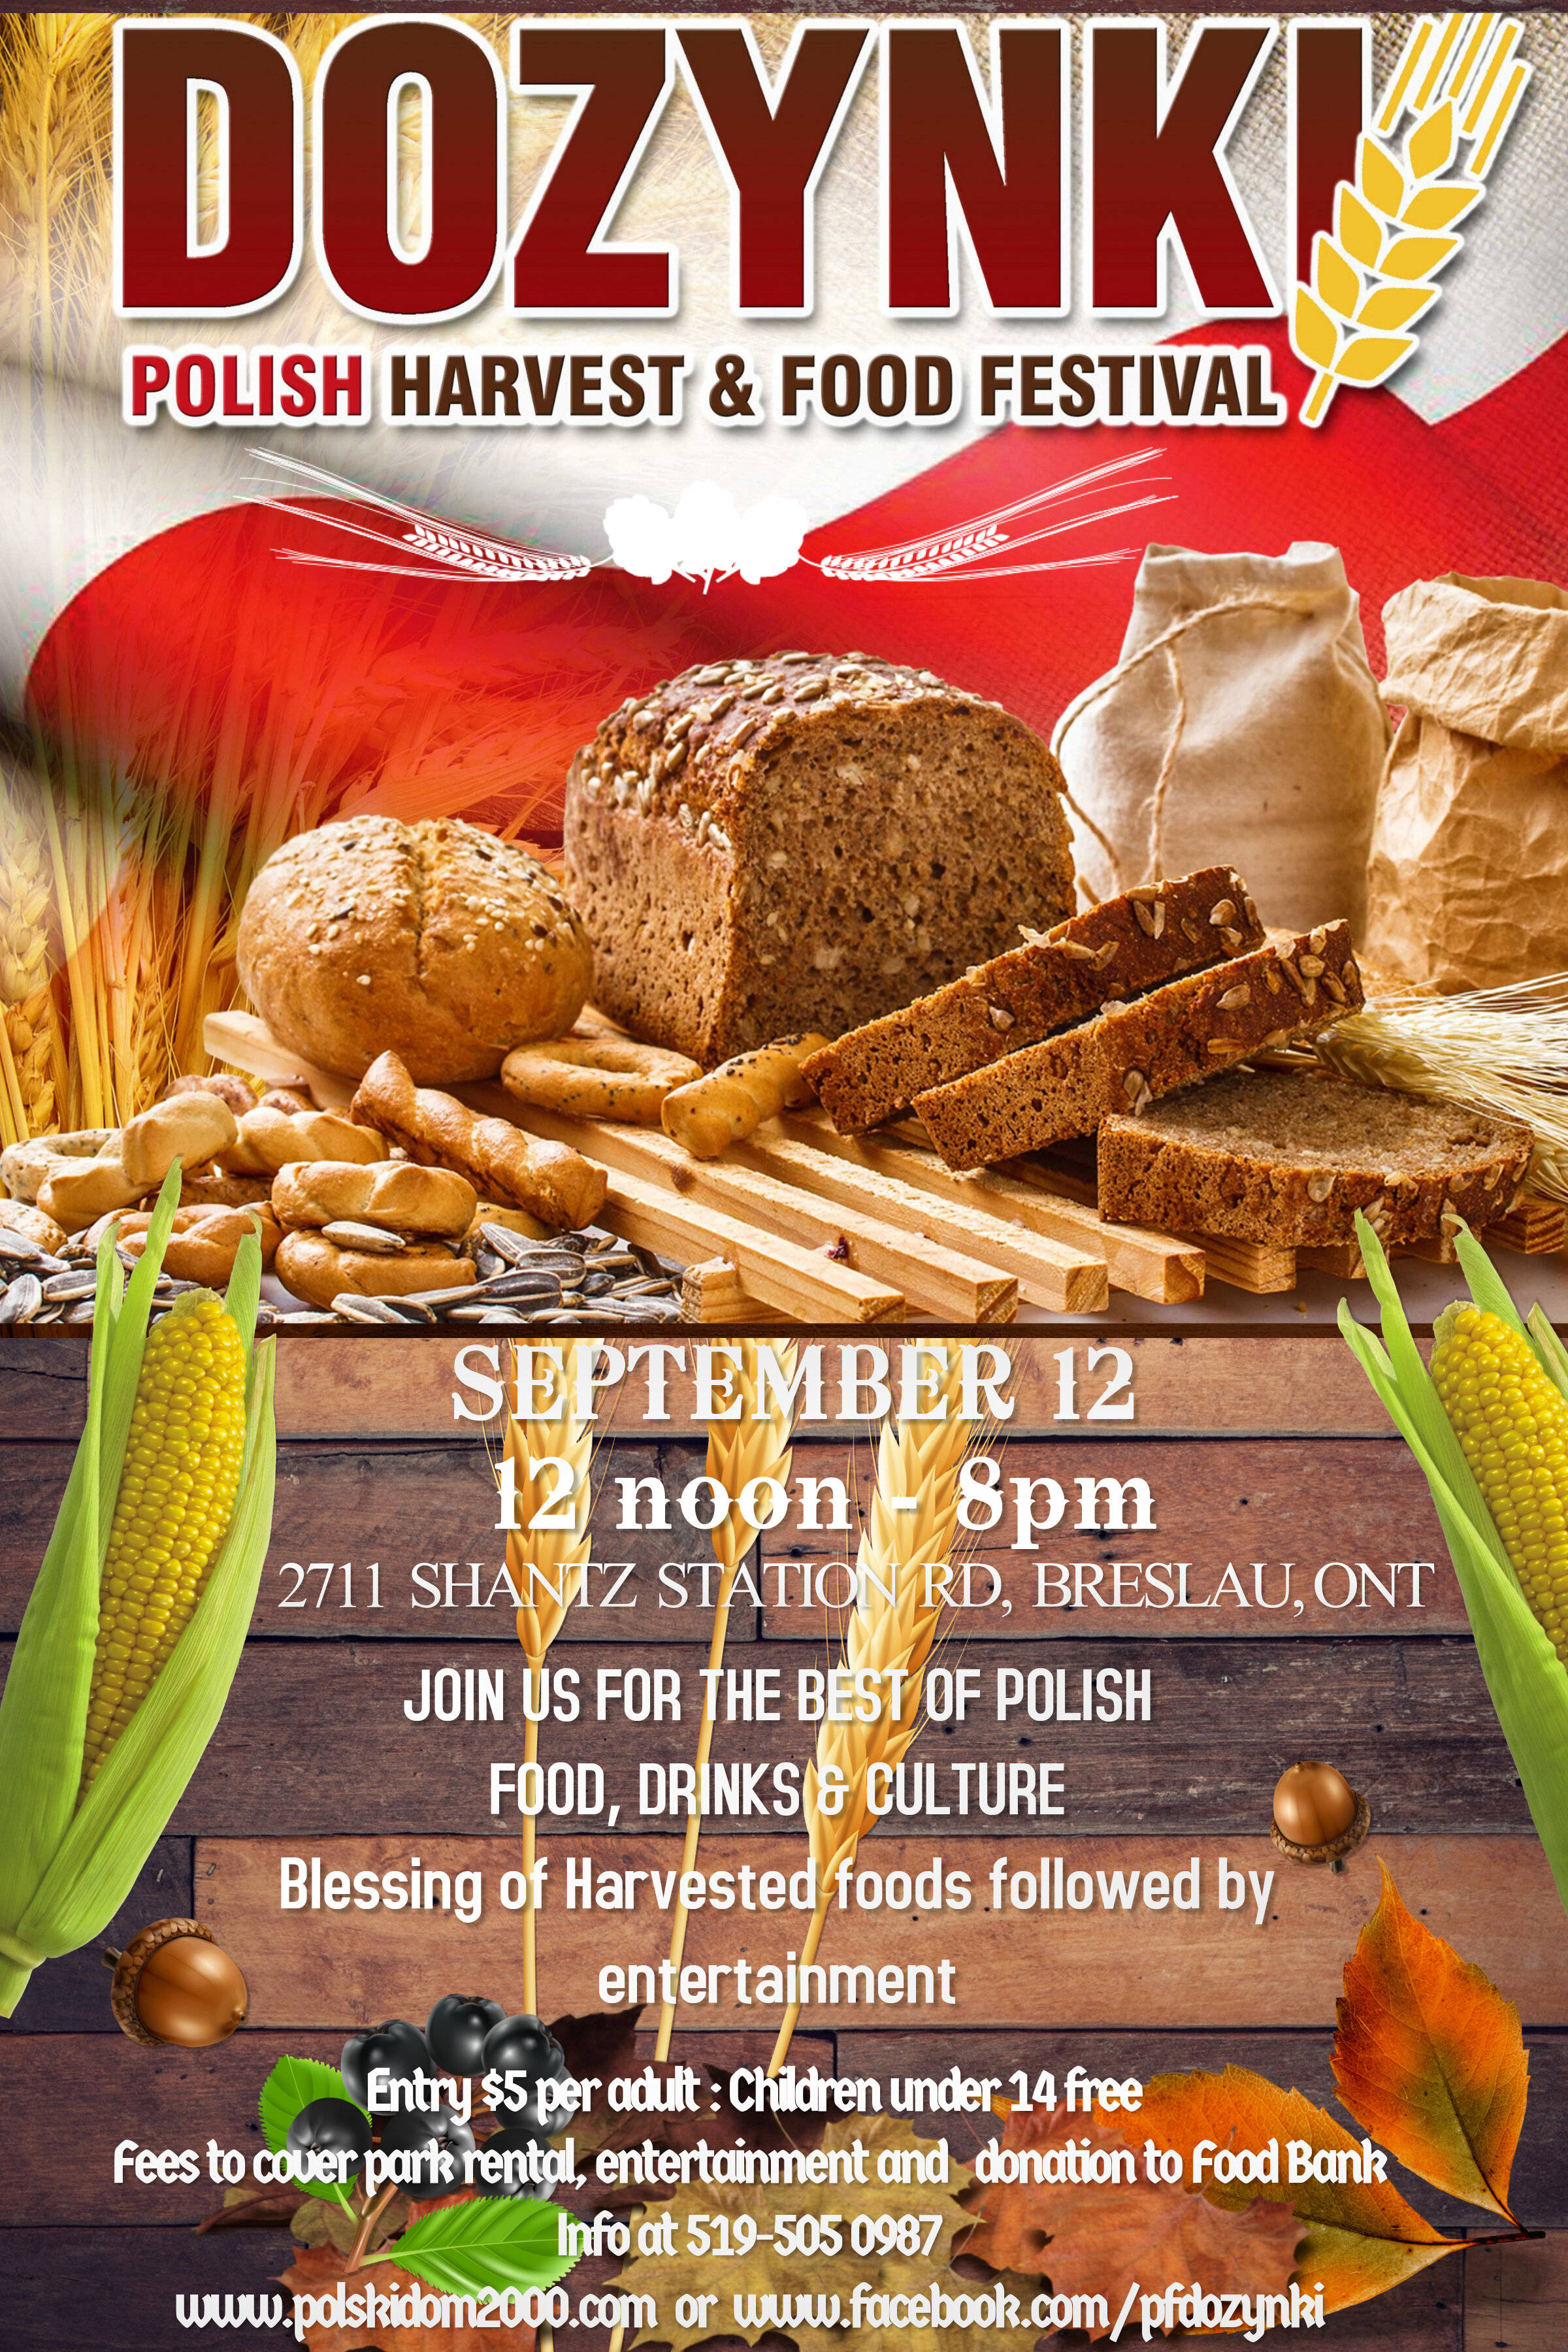 - Please join us this year to celebrate the Polish Harvest & Food festival, September 12. 2020, and experience traditional Polish foods and culture.Dozynki is a celebration of thanksgiving after a bountiful harvest dating back to 16th century Poland. It remains a long-standing tradition in Polish communities throughout the world, including right here the Kitchener-Waterloo region!Next year's Dozynki /Harvest festival will featureChildren's activities:Cooking demonstrations, Live entertainment including Polish folk dancing in traditional costumes and music by local Polish musiciansDelicious Polish food including authentic favourites like pierogi, patyczki (meat on a stick), golabki (cabbage rolls), potato pancakes and of course Polish sausage and beer plus much more!Exhibition of Polish fine artPolish talent showFree parking, children's playgroundAdmission: $5 per person Children under 14 free of chargeFor more info please contact event manager Jan (John) 519 505-0987Follow us on Facebook https://www.facebook.com/pfdozynki/